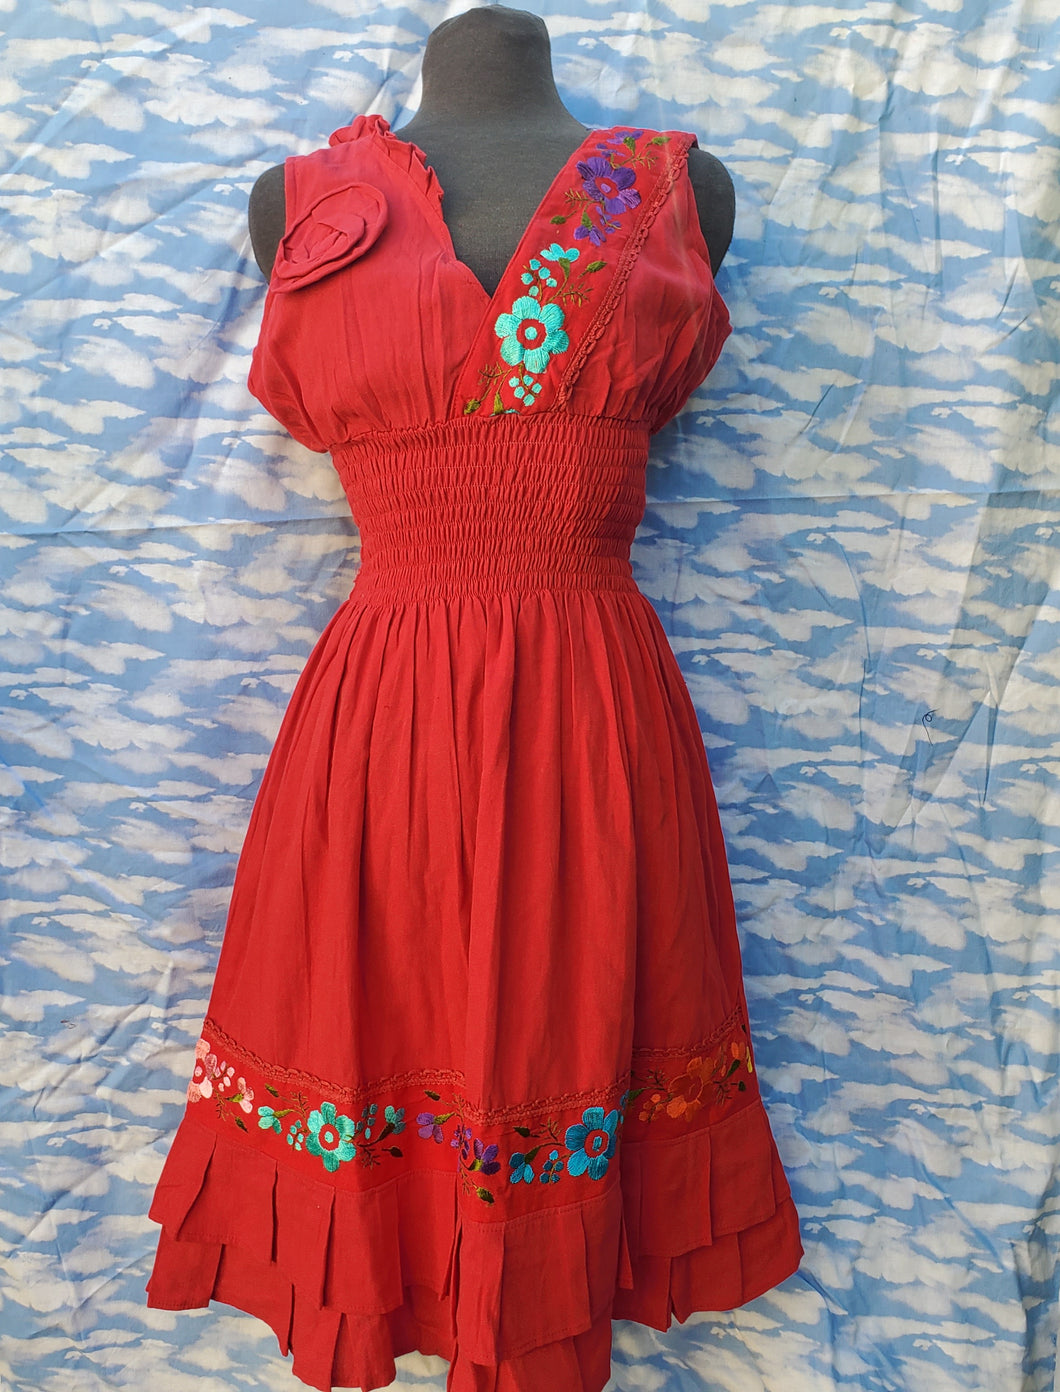 Red Embroided Dress